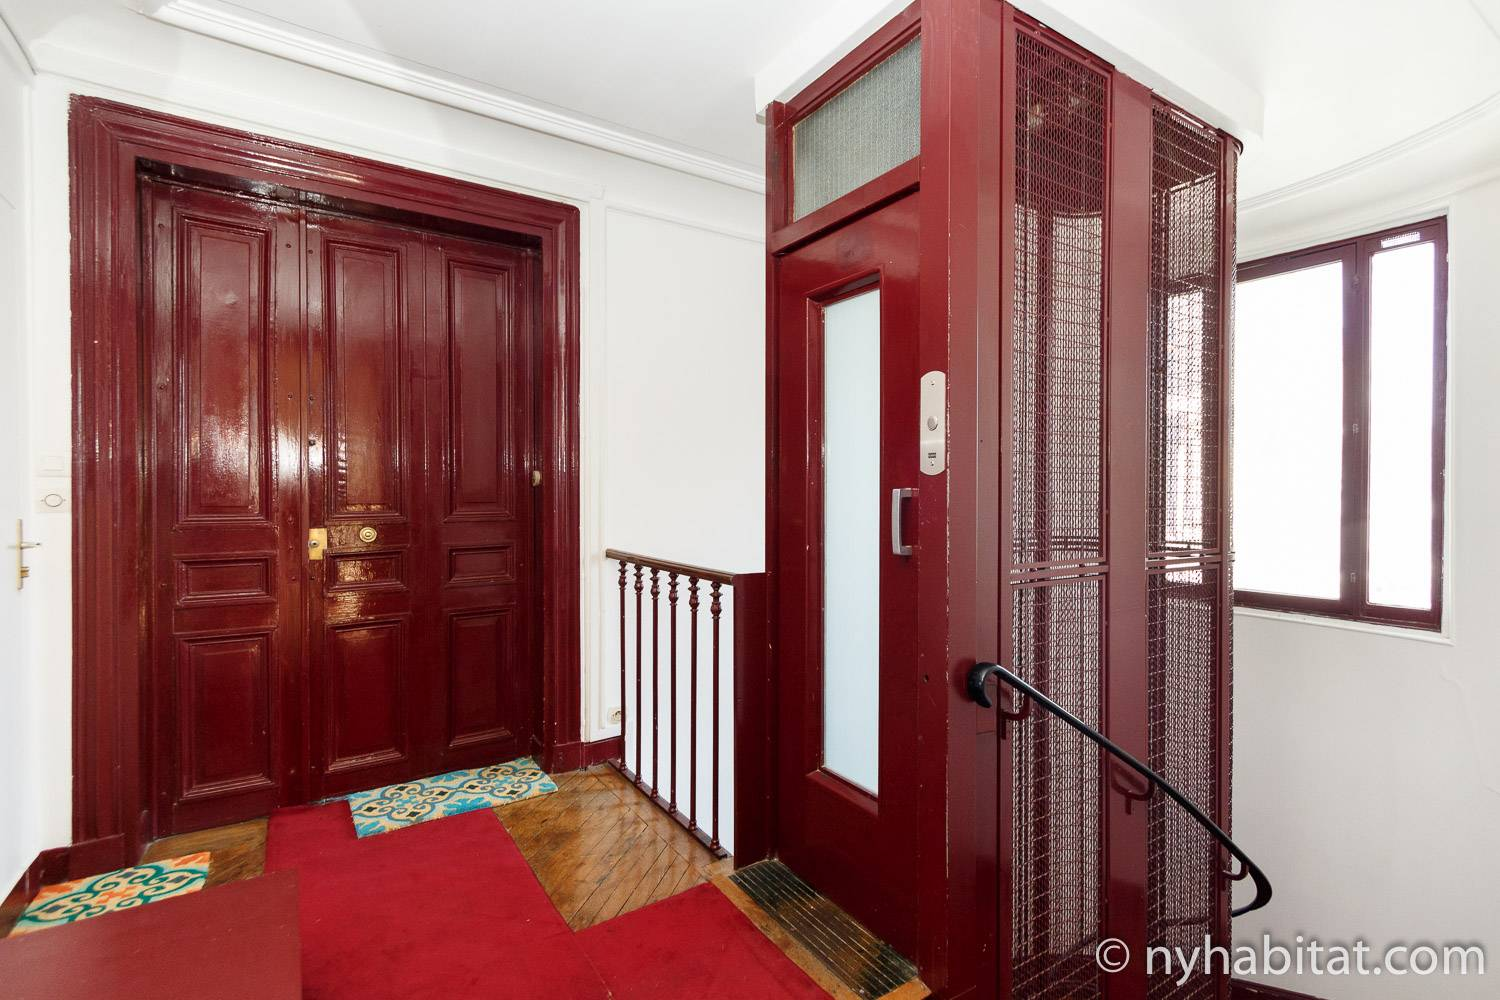 Image of the hallway and elevator in the building of Luxembourg apartment rental PA-4153.